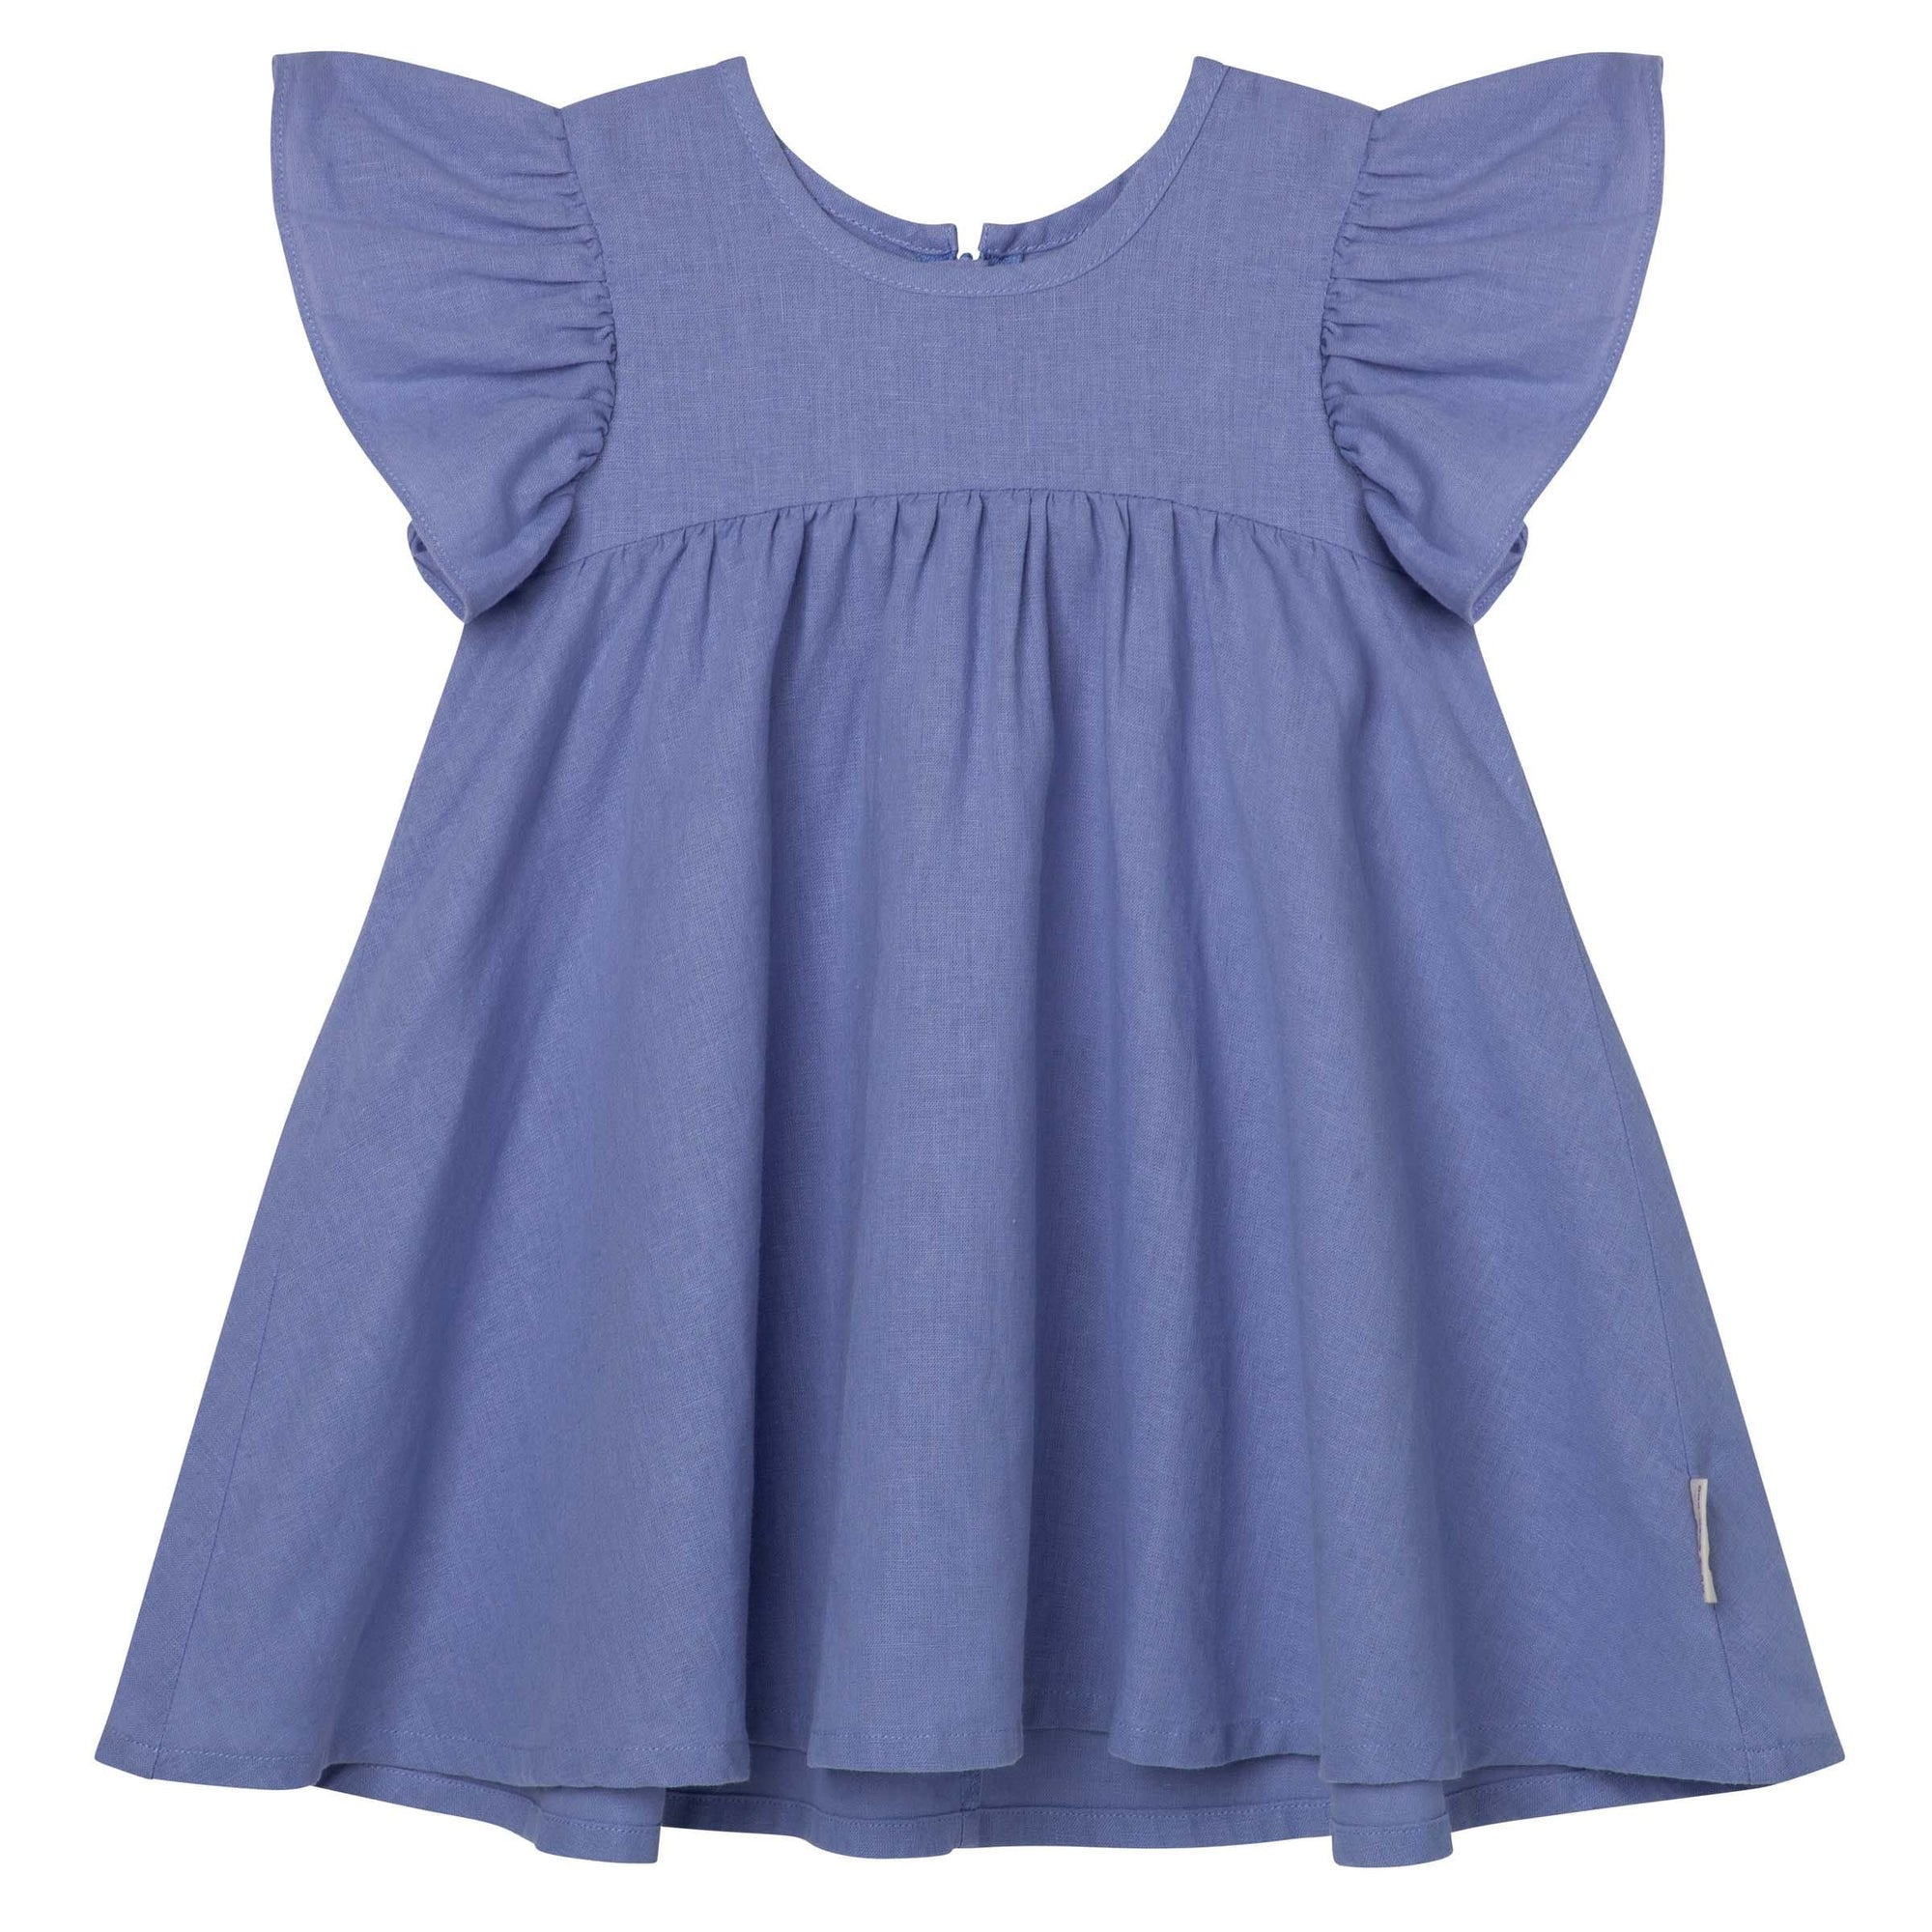 Designer Kidz Frill Sleeve Dress - Pacific Blue